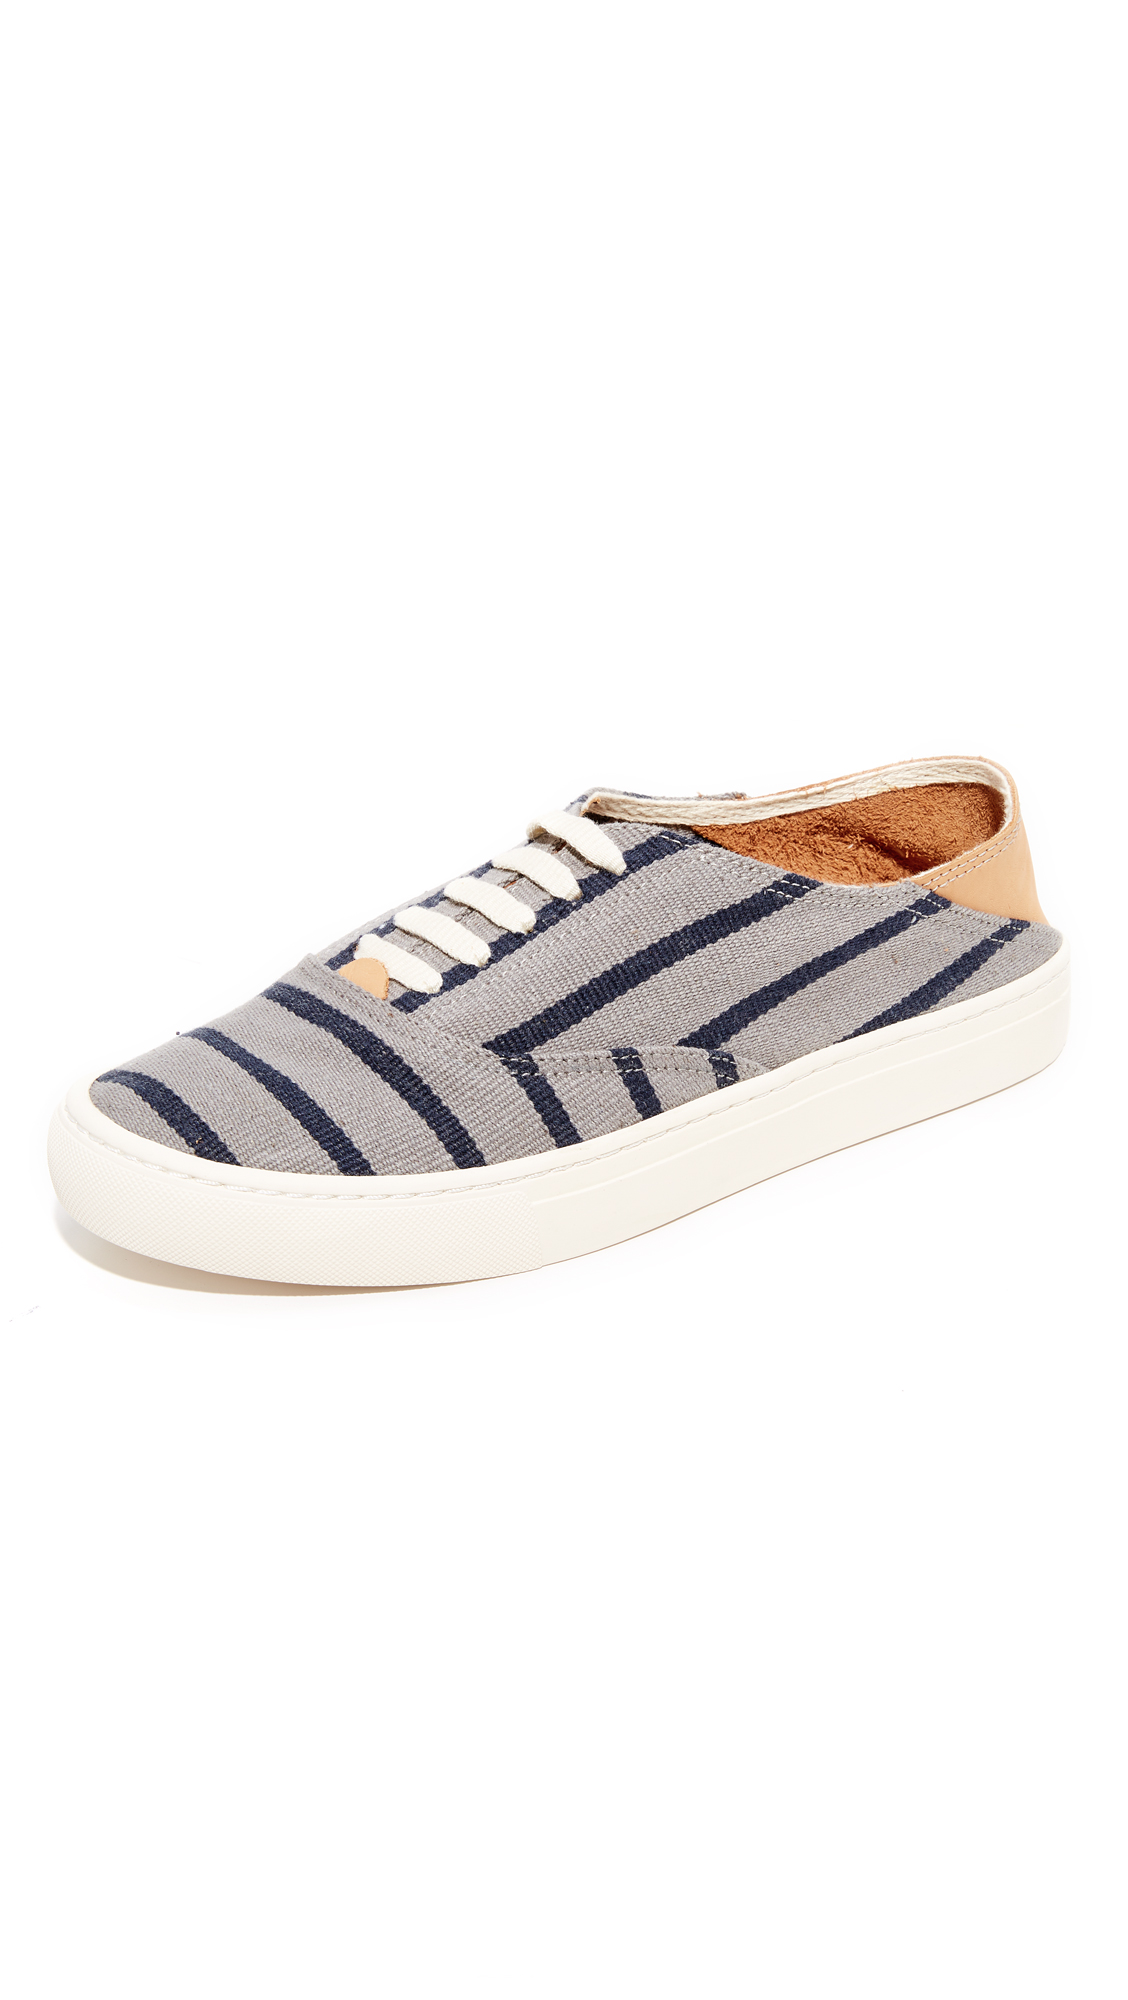 Soludos Canvases STRIPED CLASSIC SNEAKERS